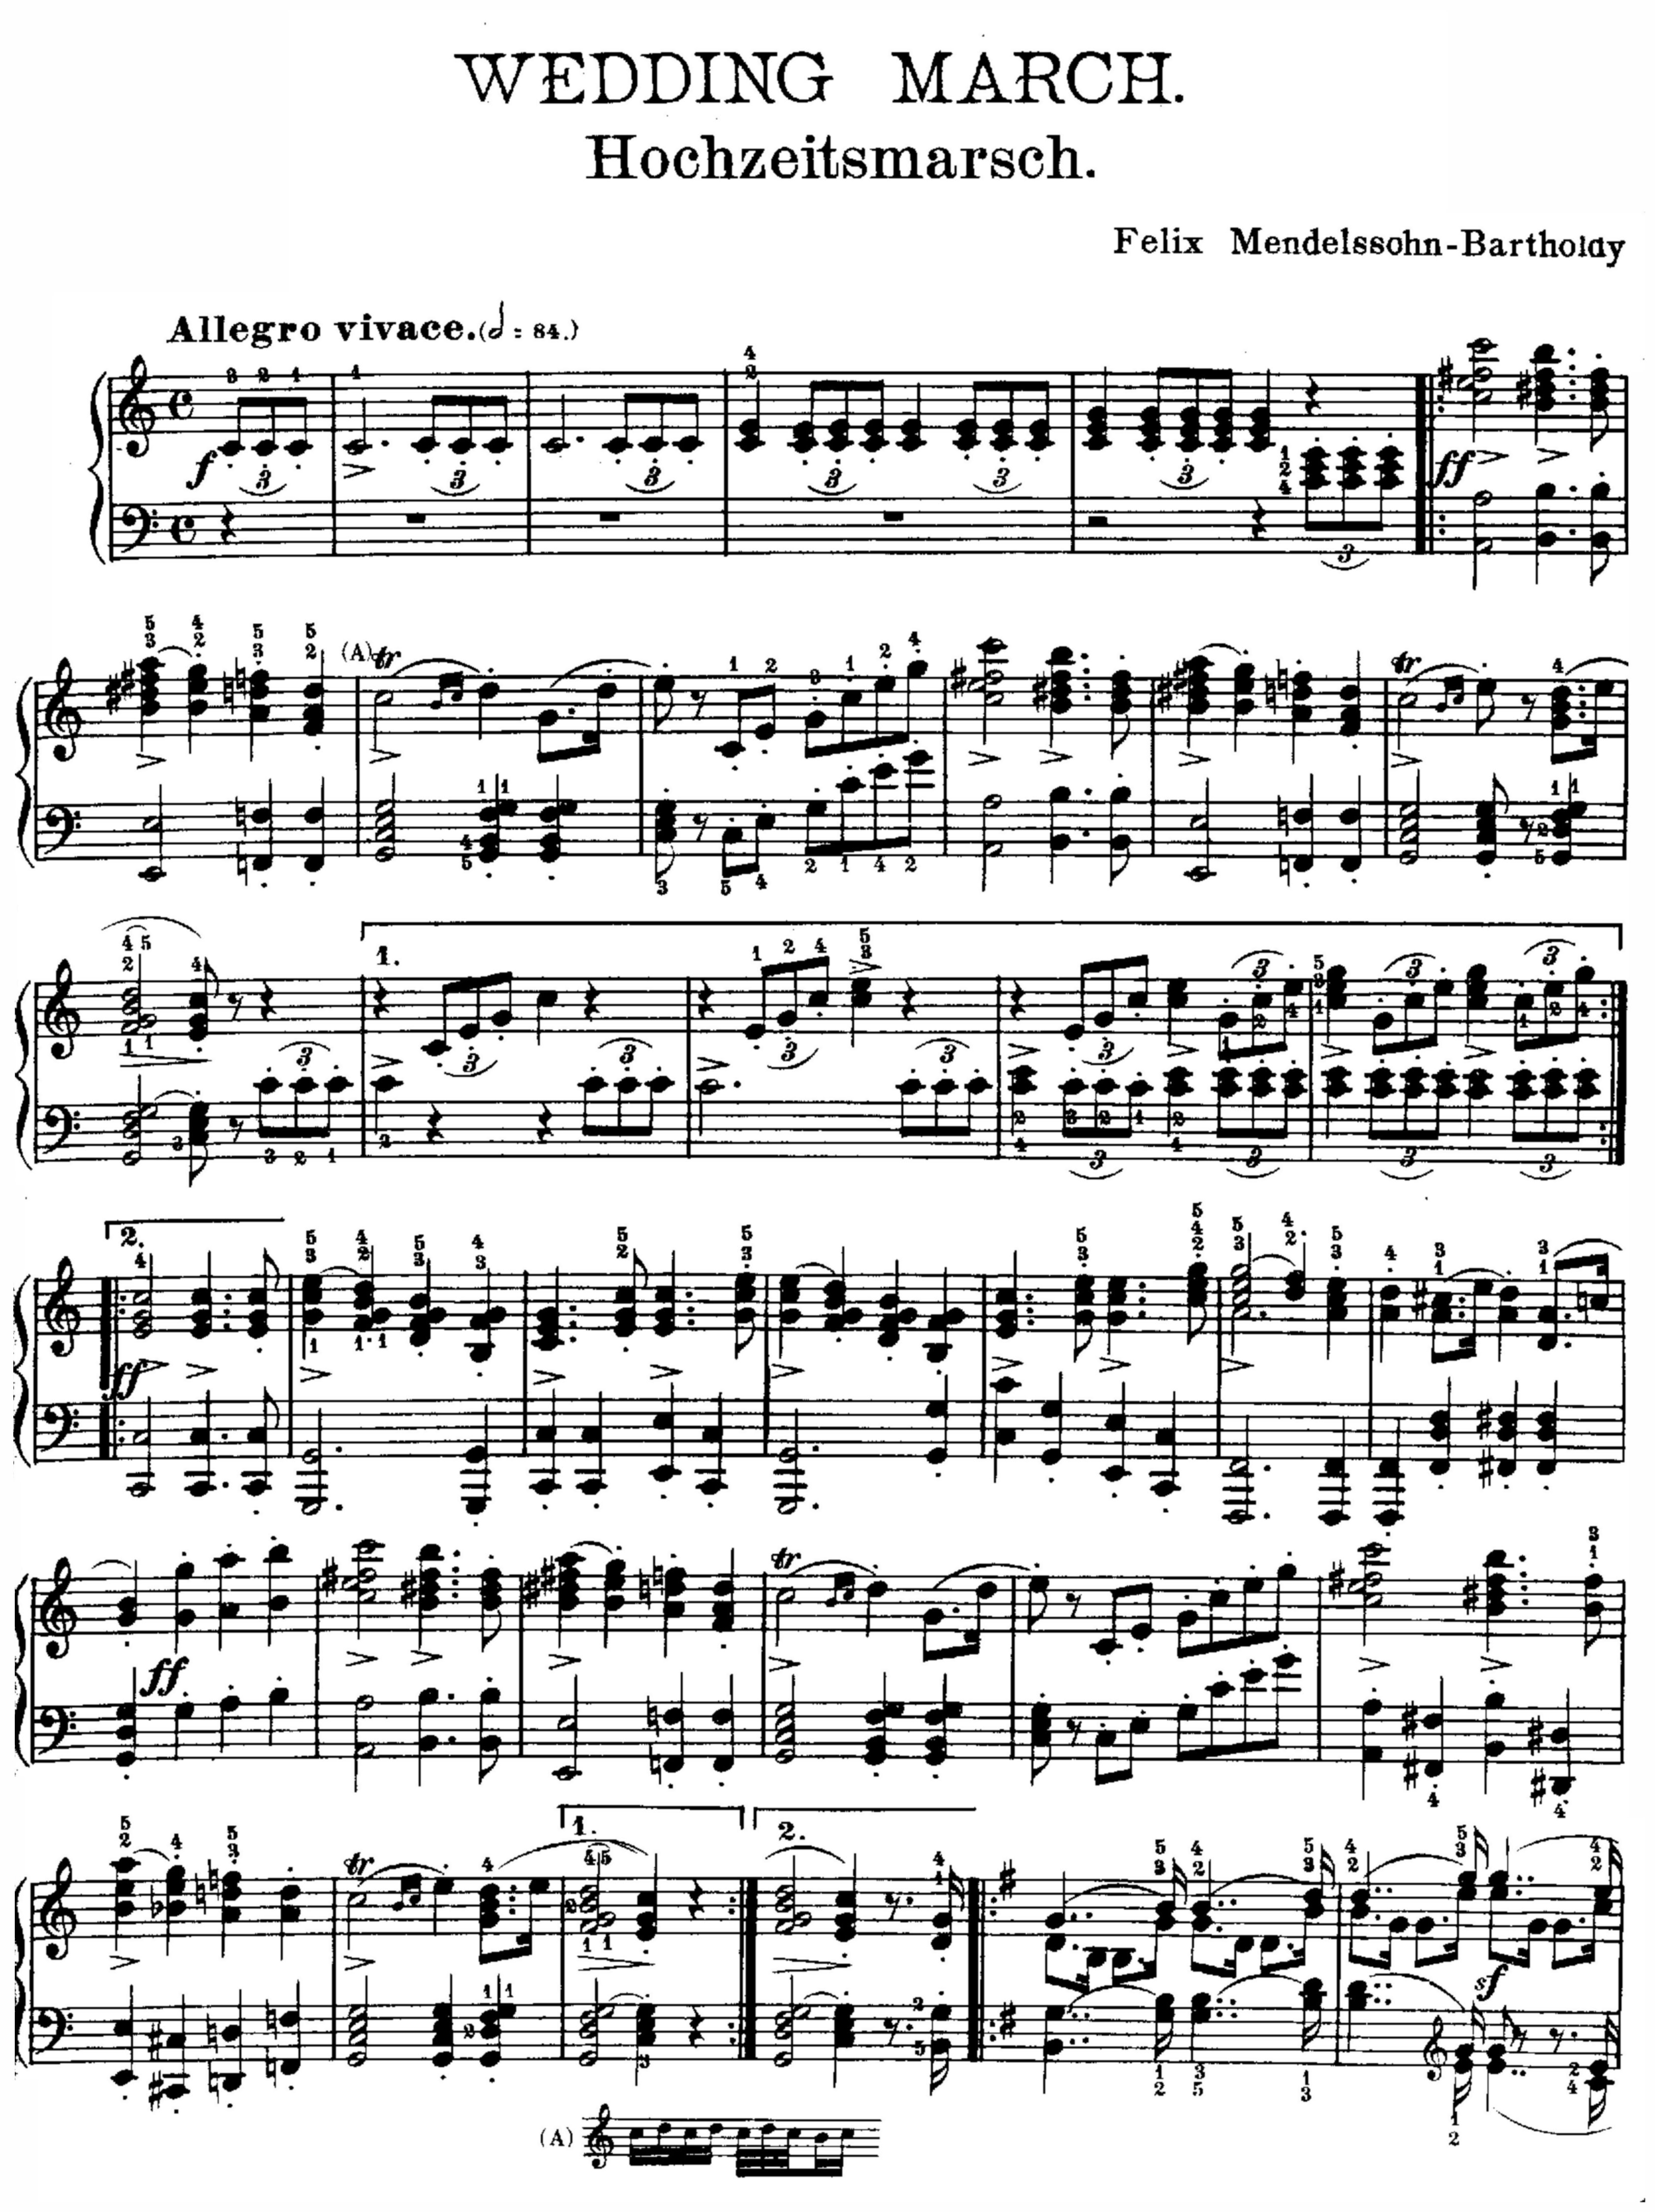 Is There A Definitive Copy Of Piano Sheet Music For The Wedding March Classicalmusic